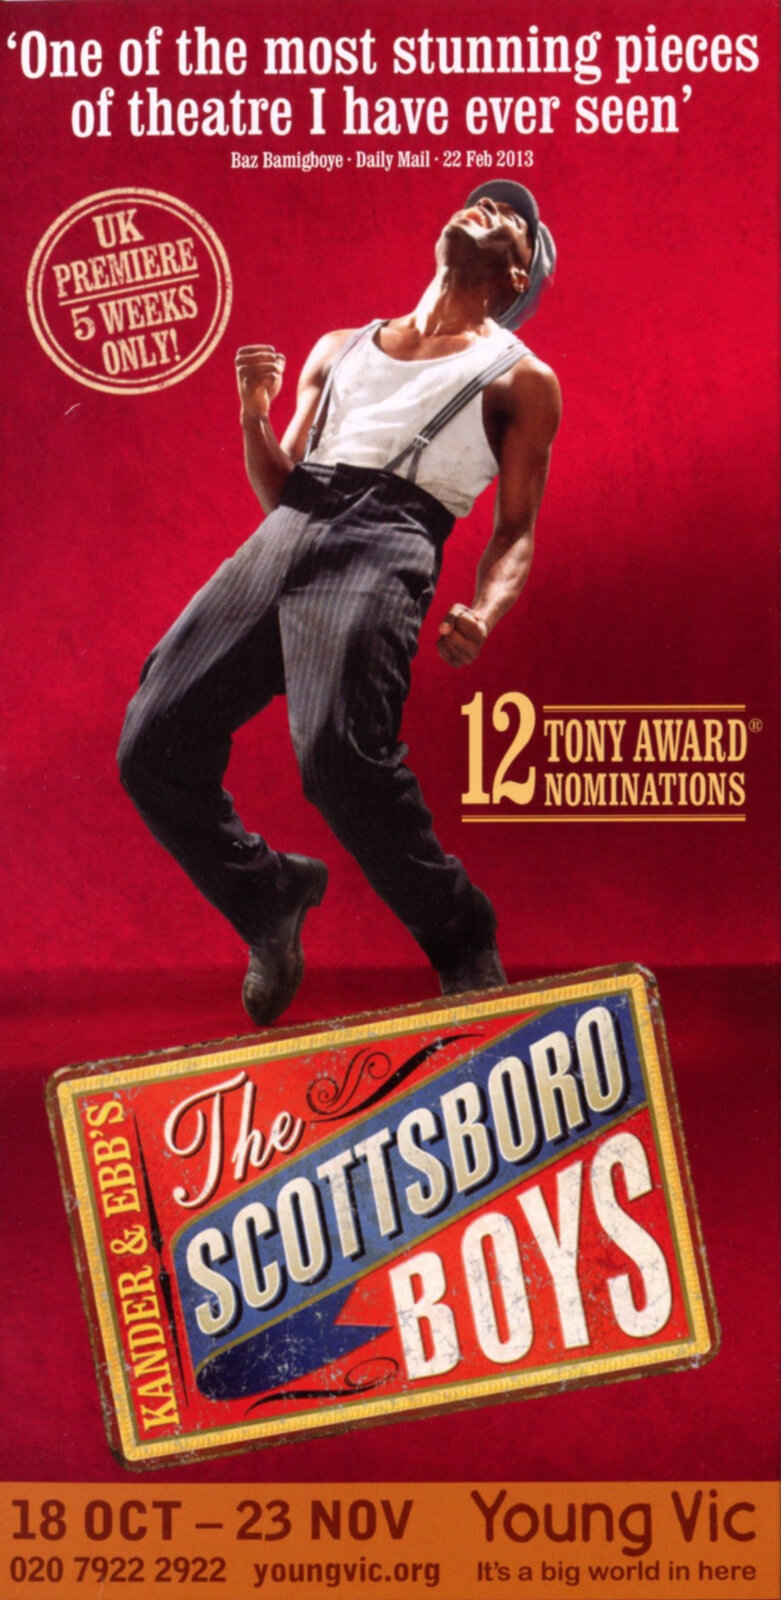 Poster from the The Young Vic Production in the London. A solo dancer performs a dance step balancing on his toes. The poster says 12 Tony nominations.